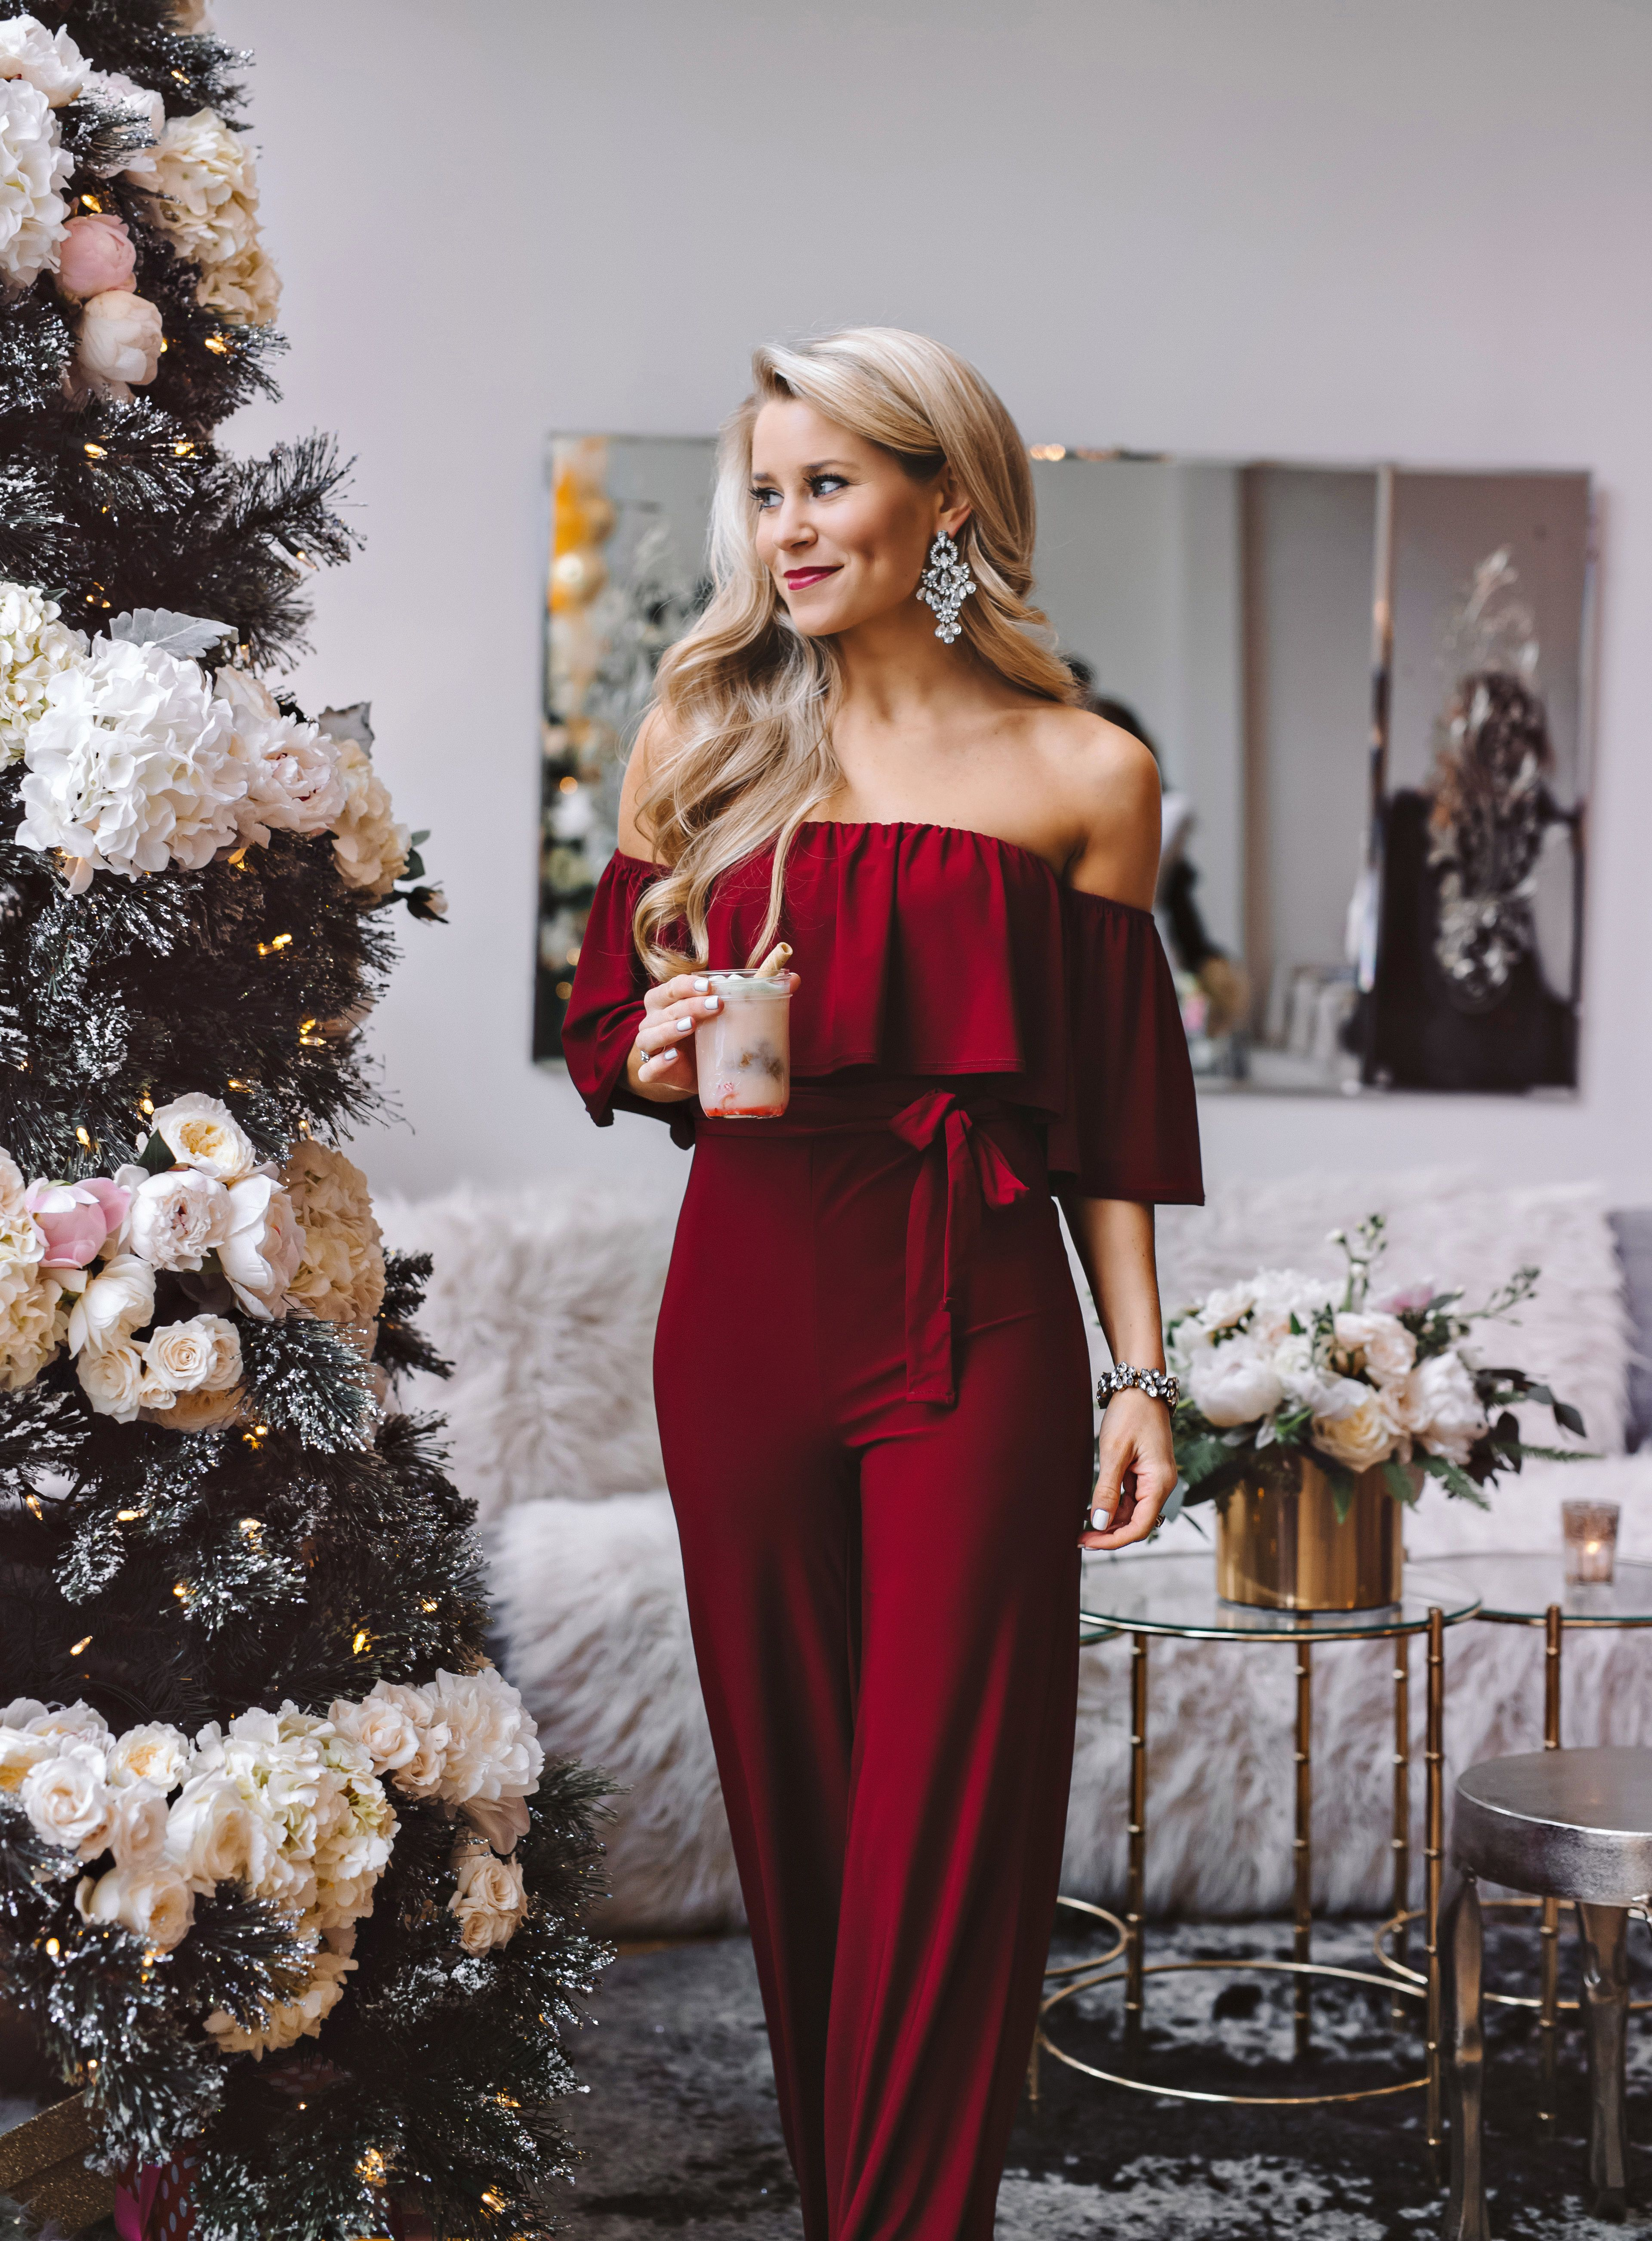 Holiday Party Decor + Outfit Ideas | Cute christmas ...